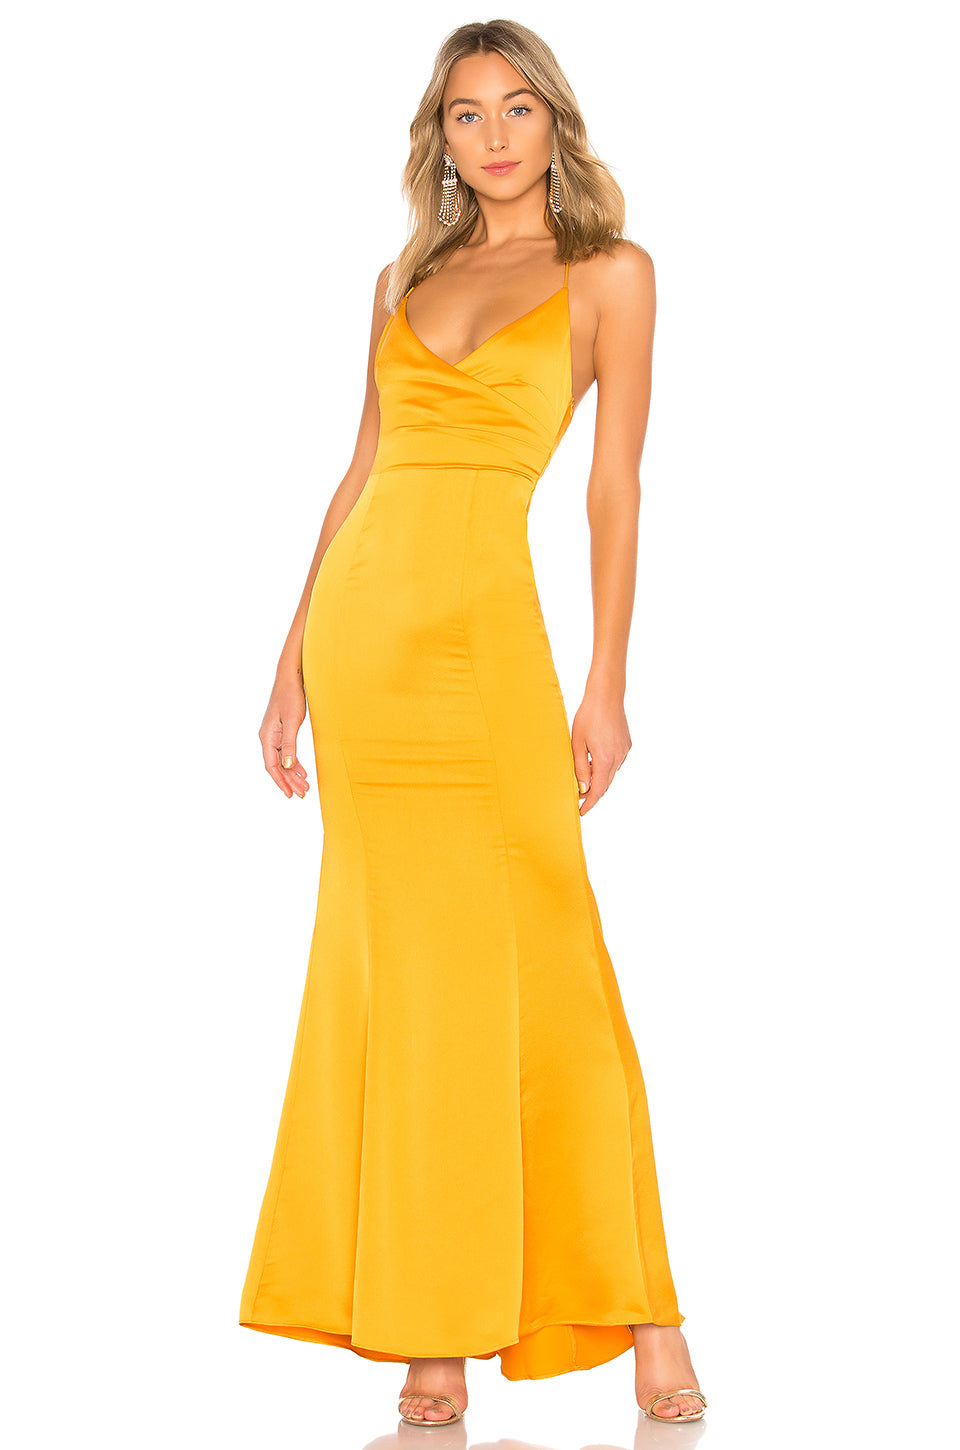 Vilailuck Gown in Golden Yellow | Lovers + Friends - Lovers + Friends